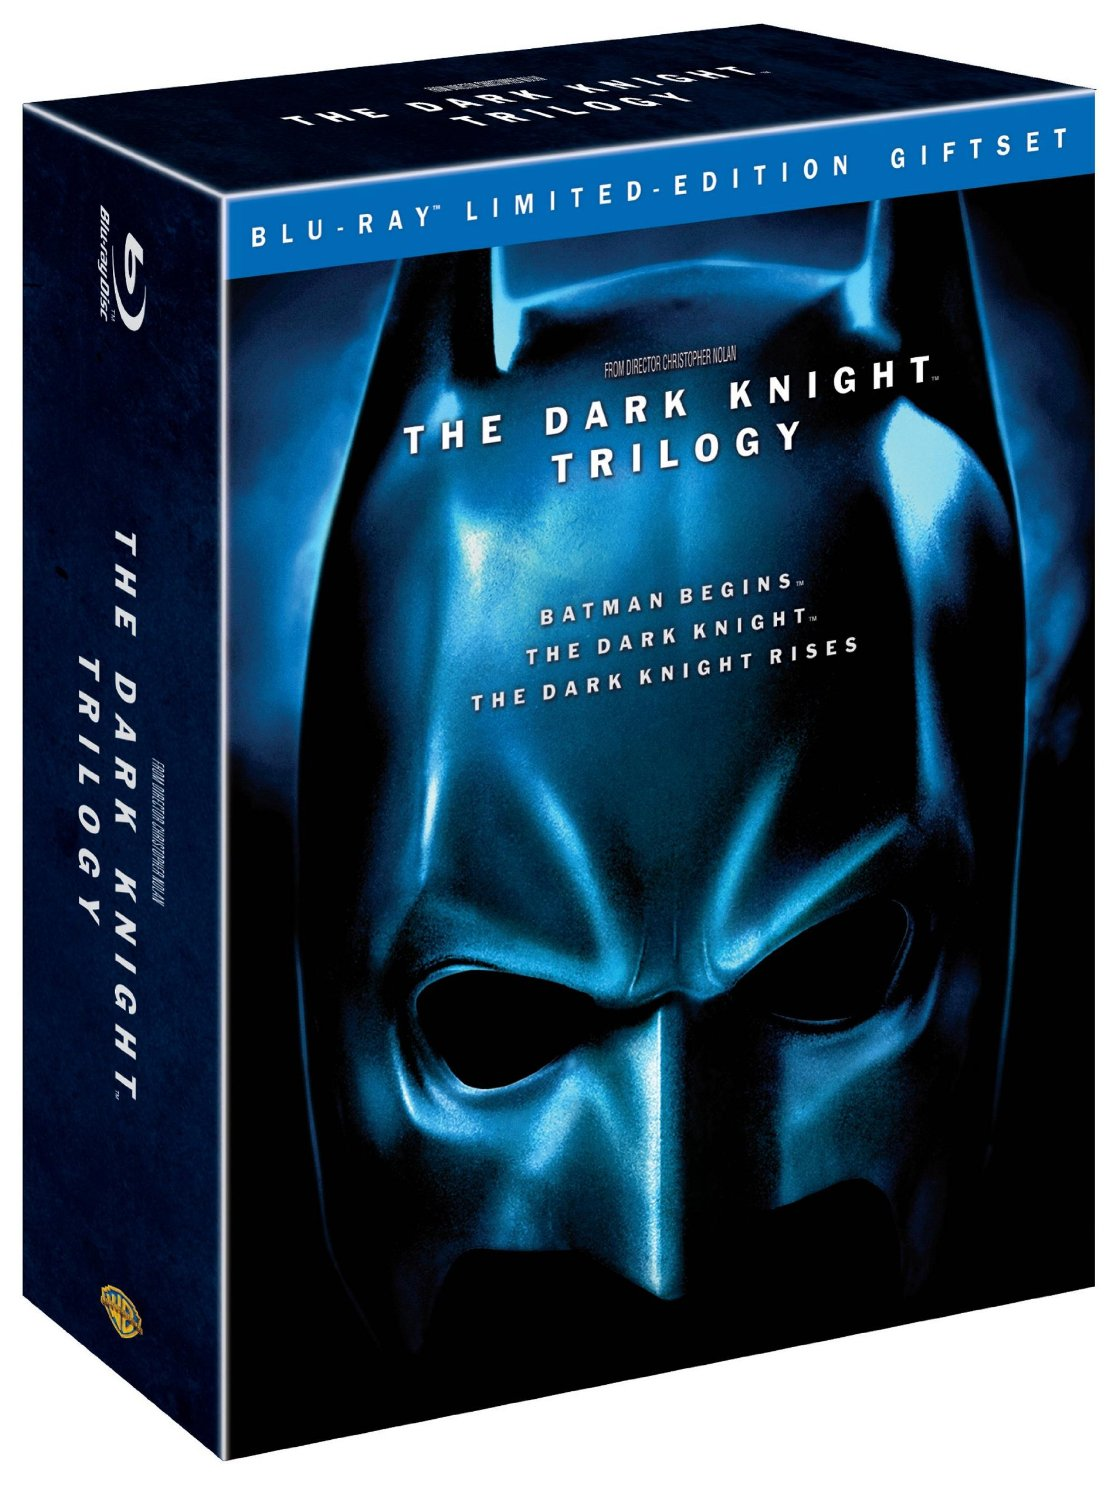 Dark knight coupon code / Travel deals istanbul